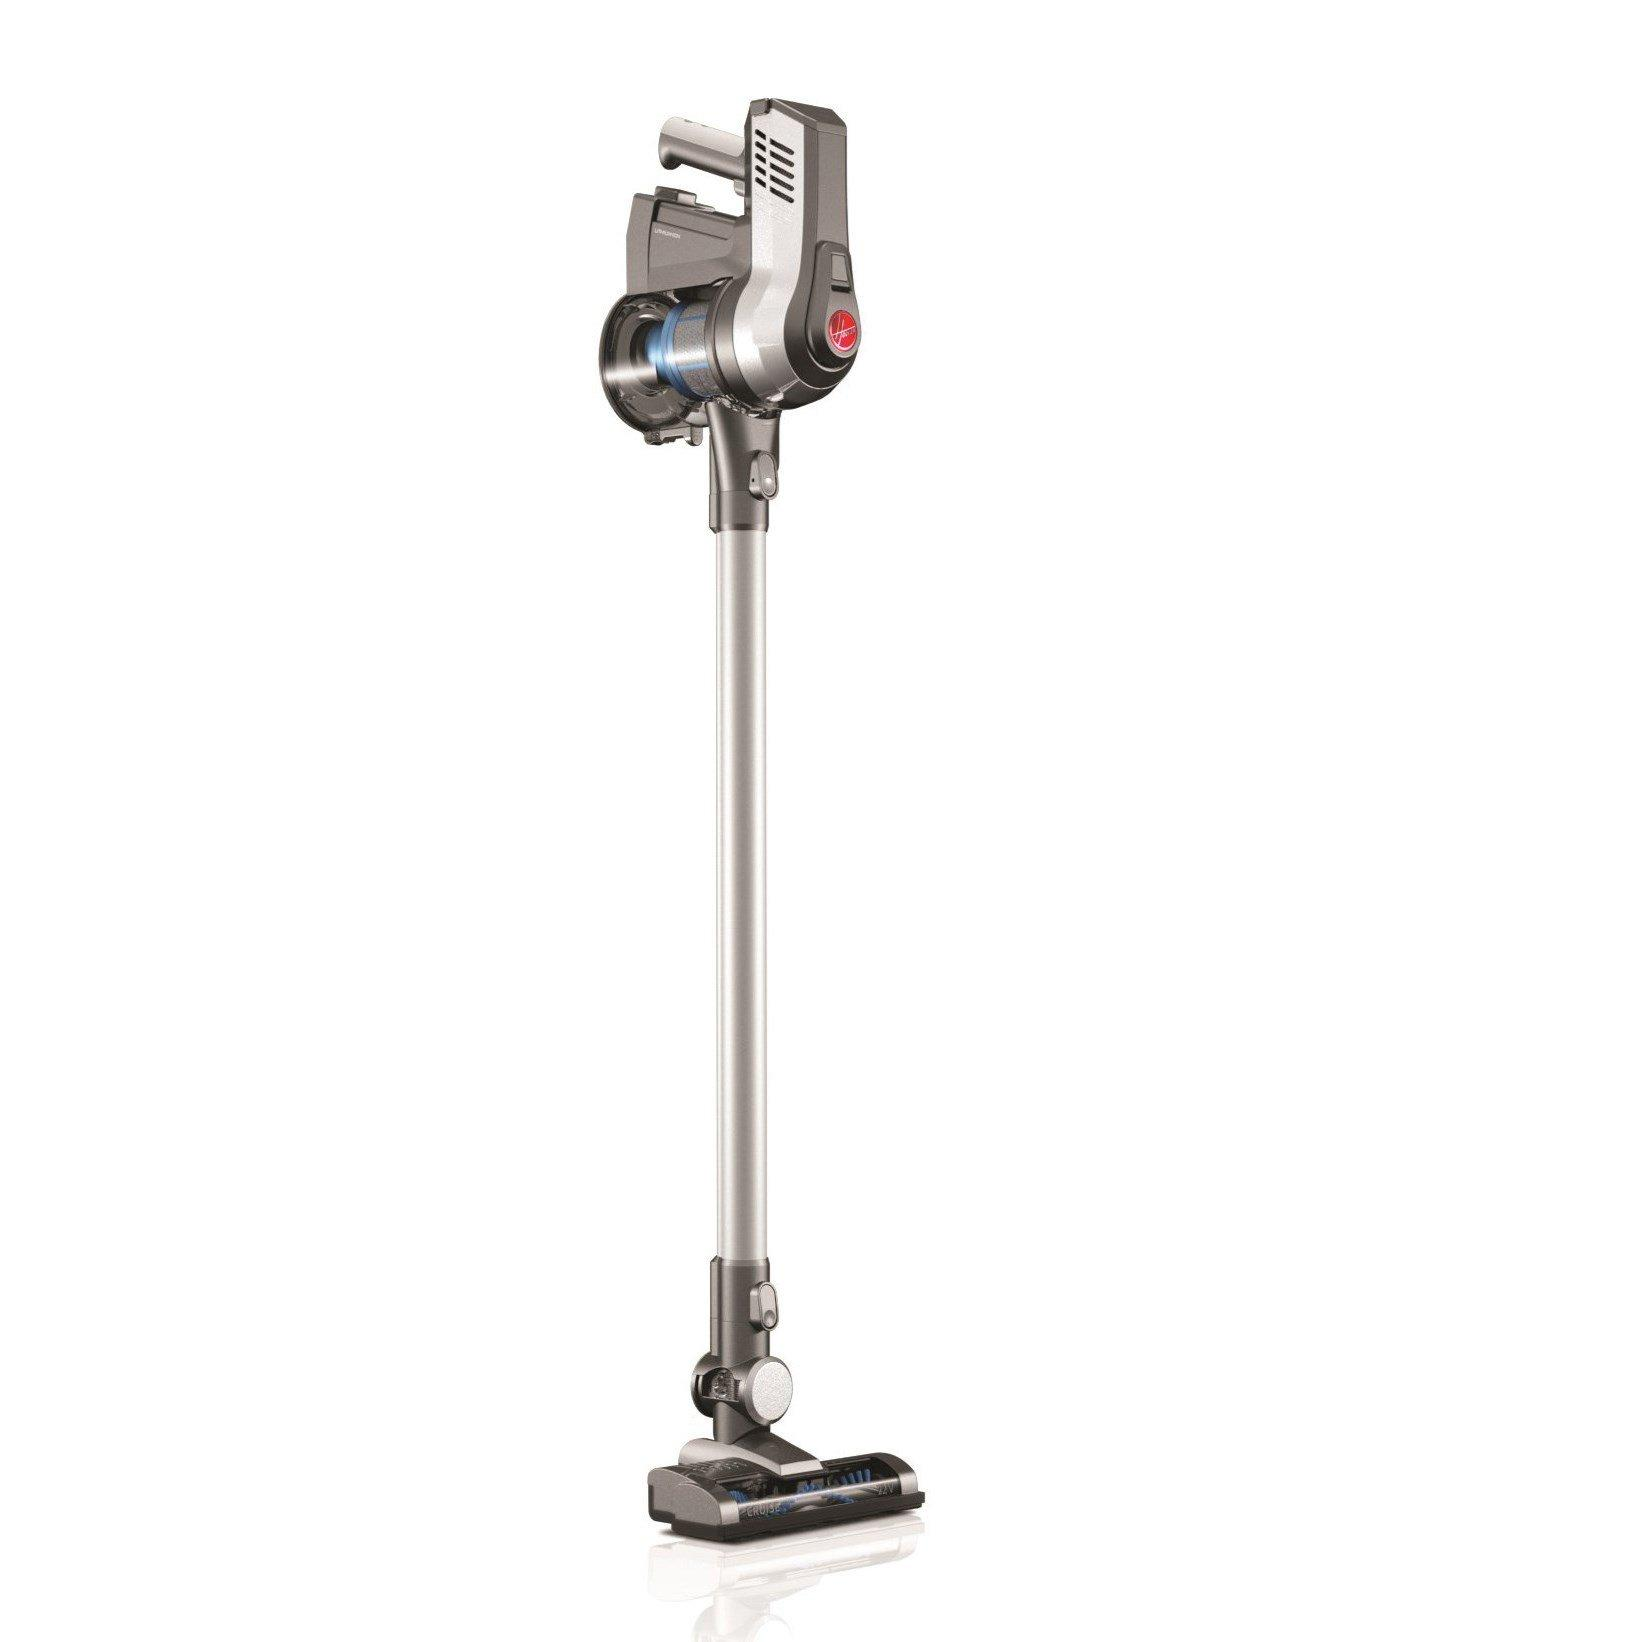 Hoover Cruise Cordless Ultra Light Stick Vacuum Bh52210